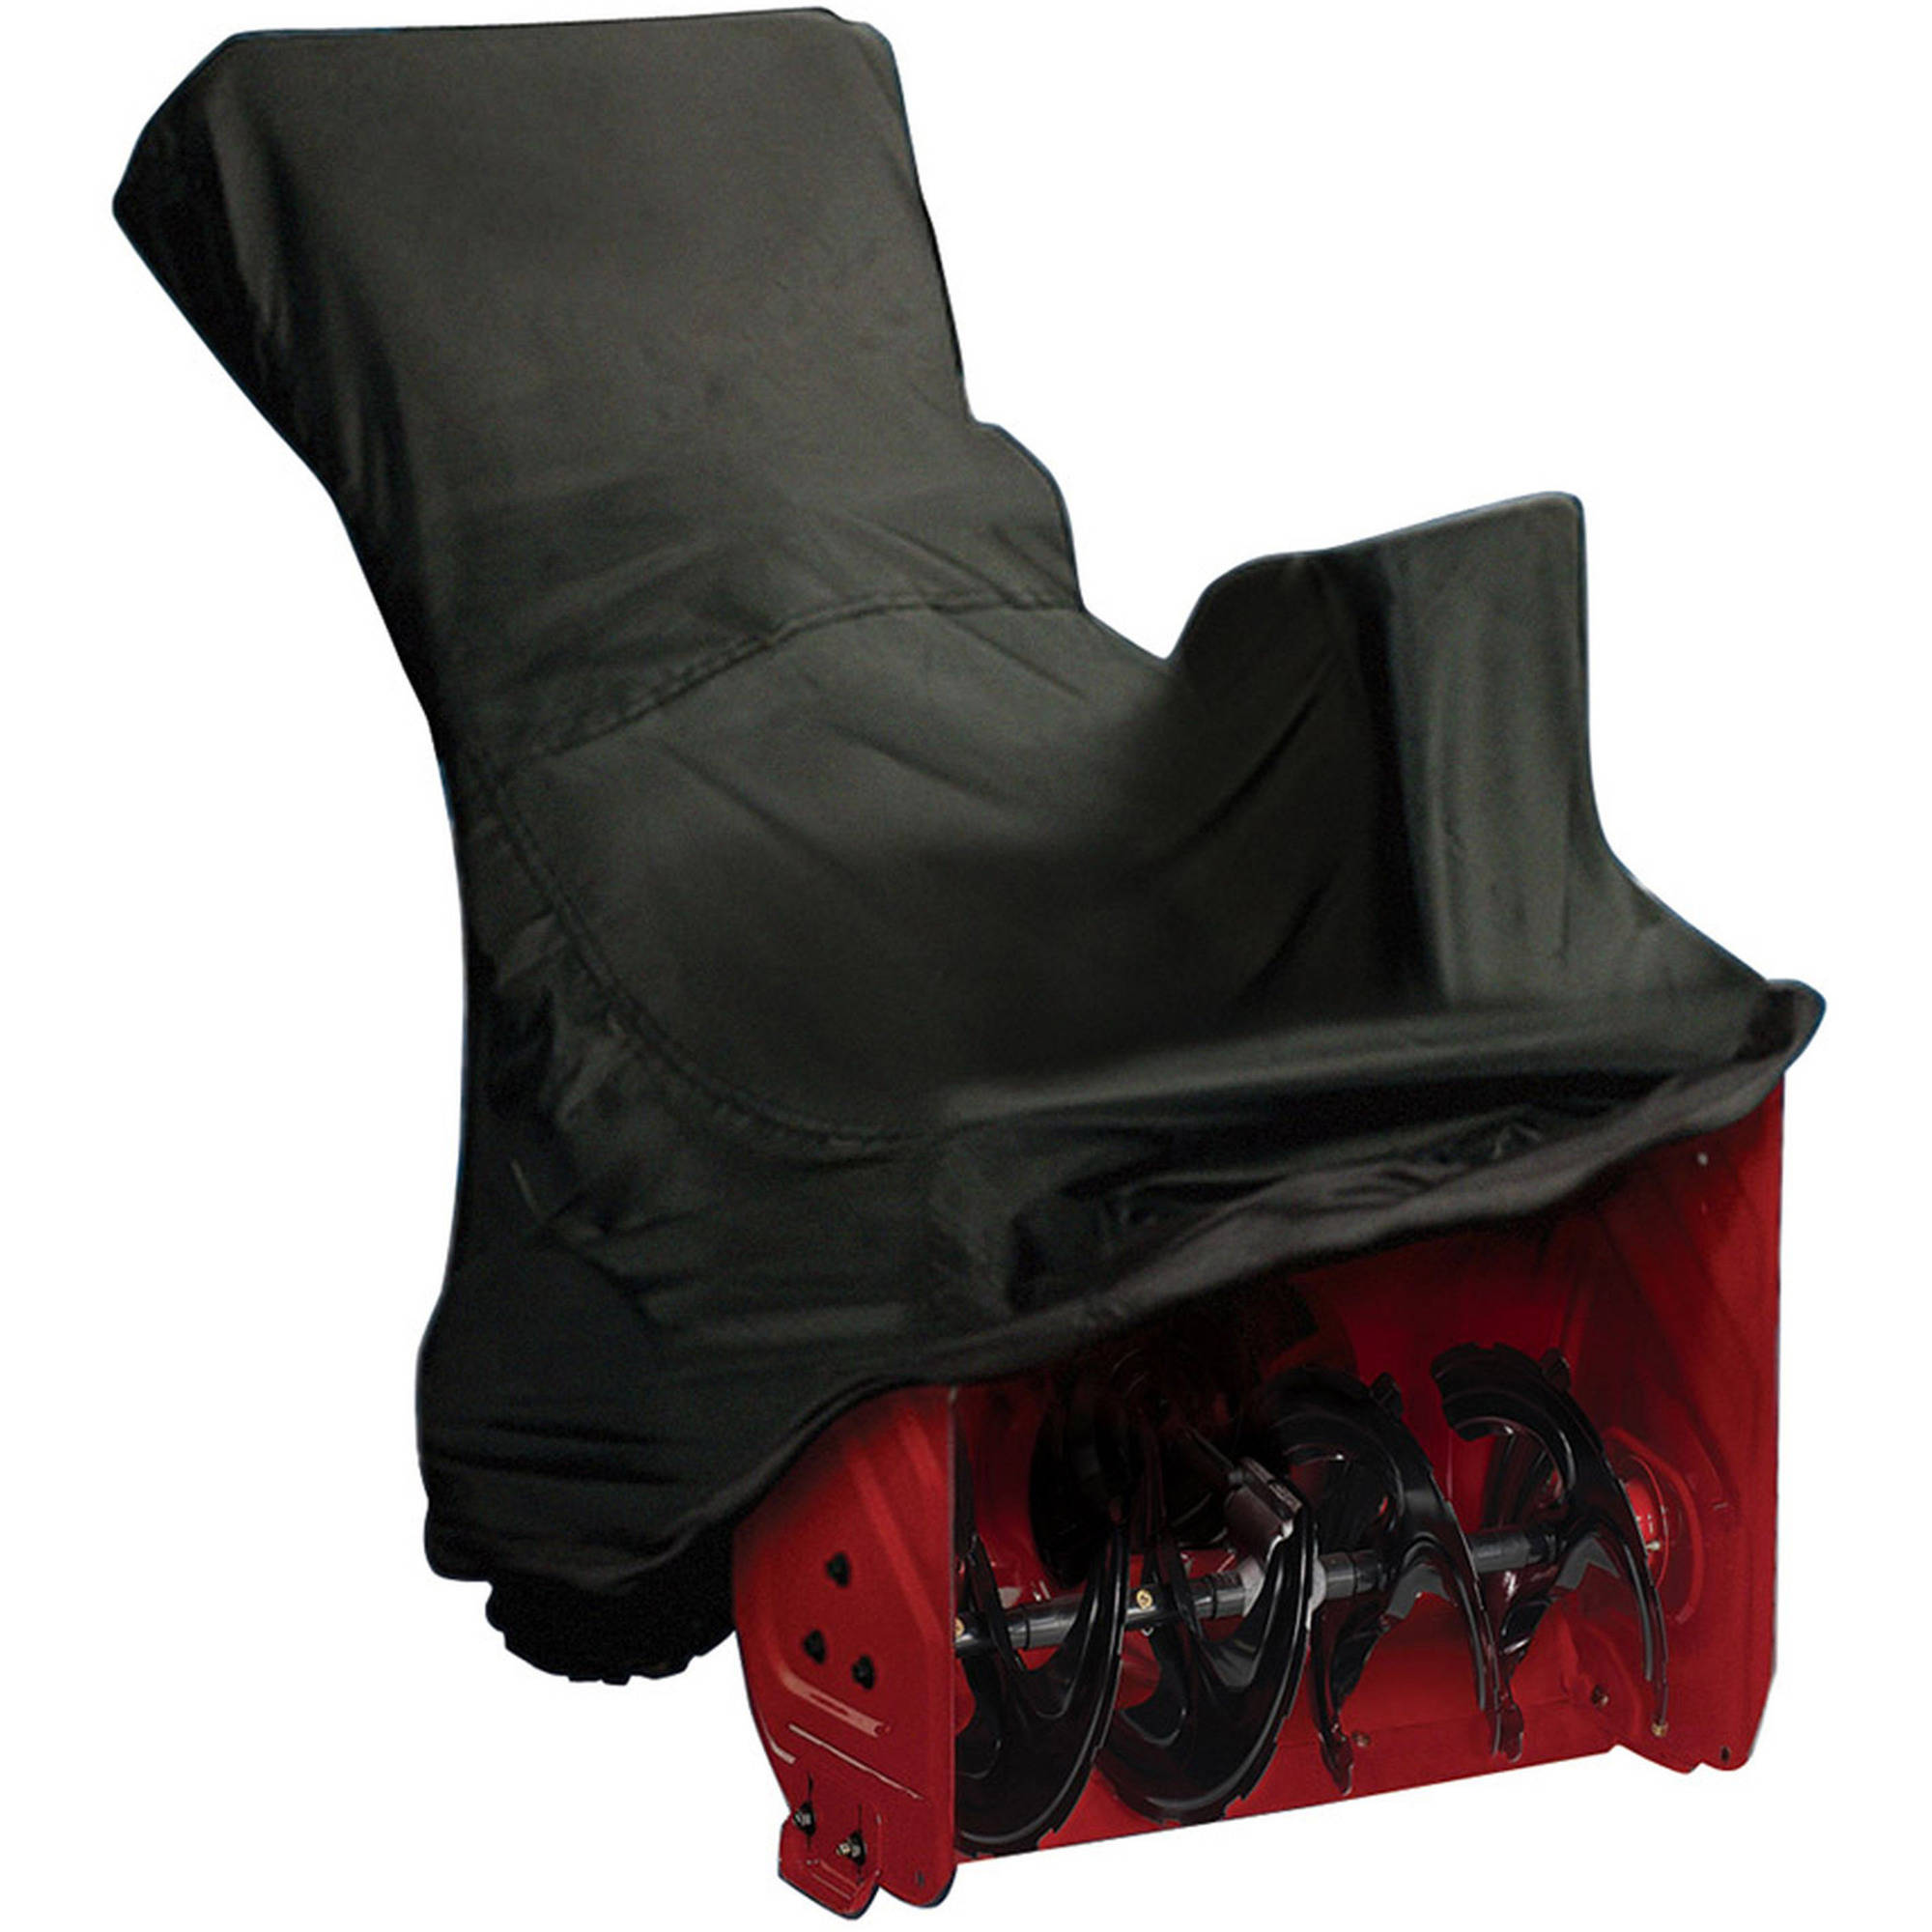 Universal Snow Thrower Cover